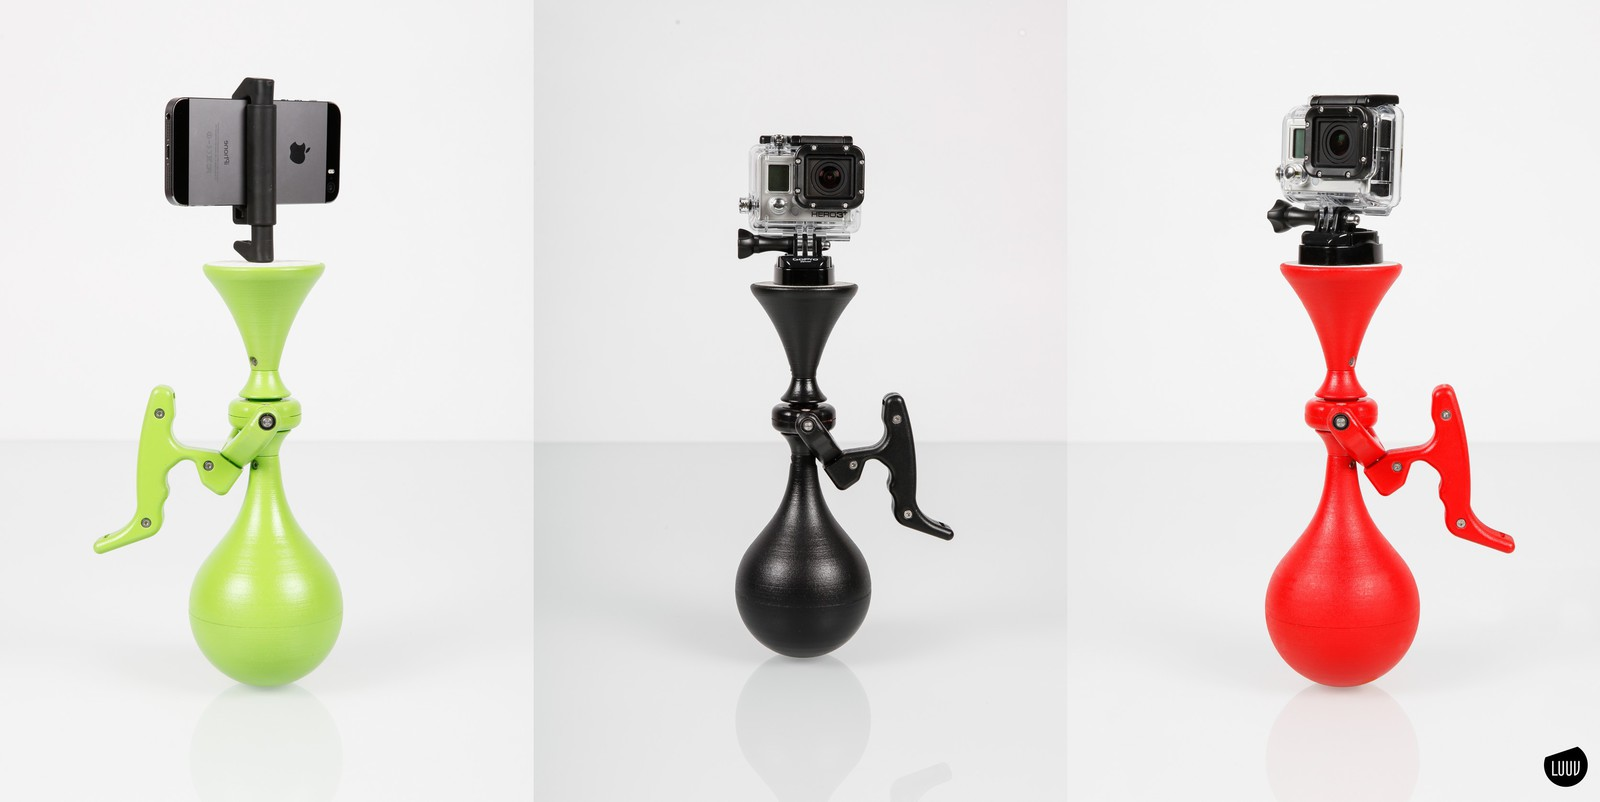 LUUV - The first plug & play camera stabilizer